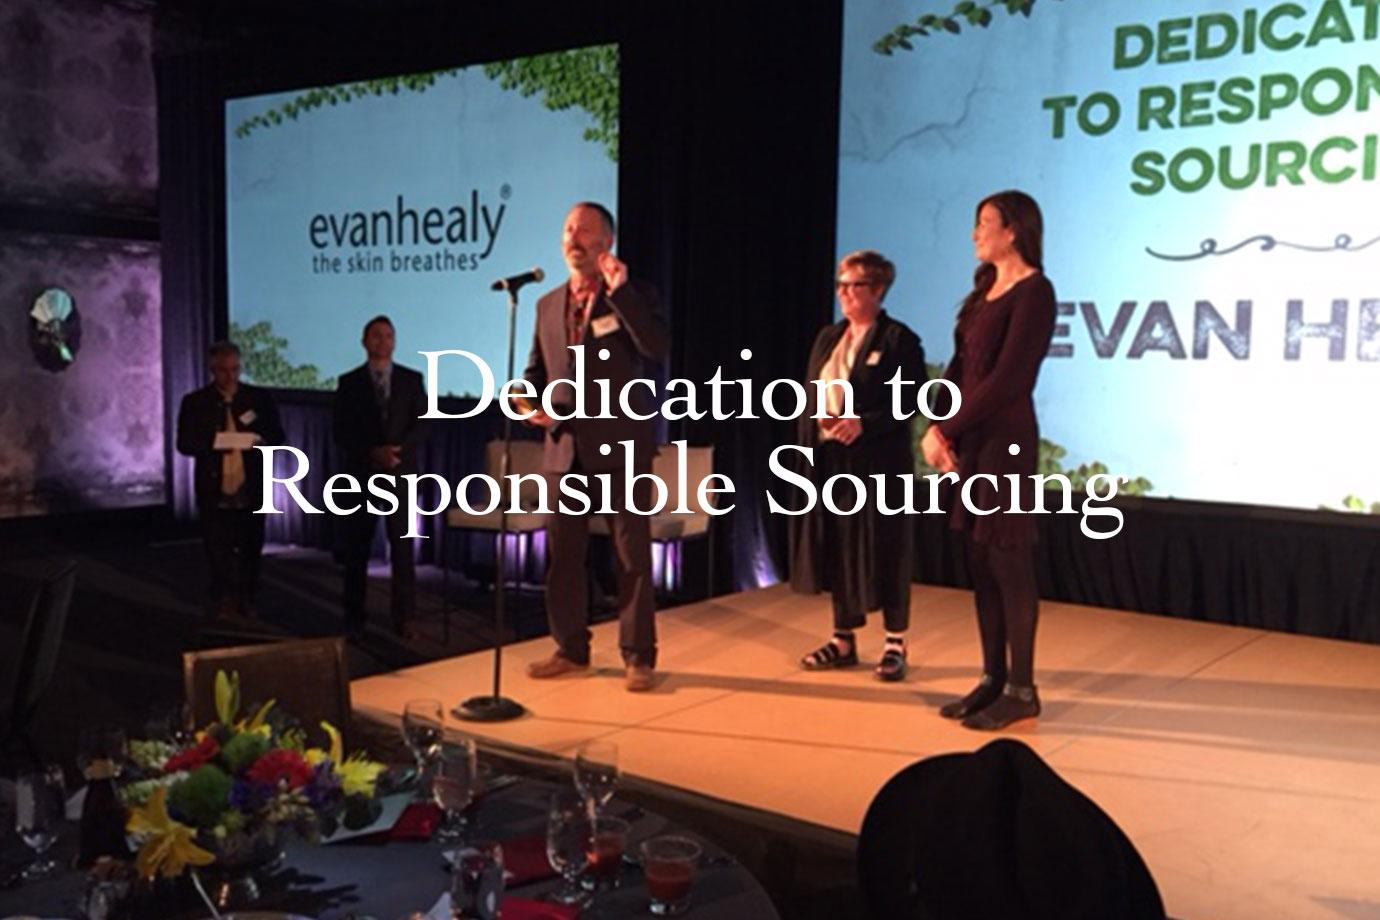 Dedication to Responsible Sourcing